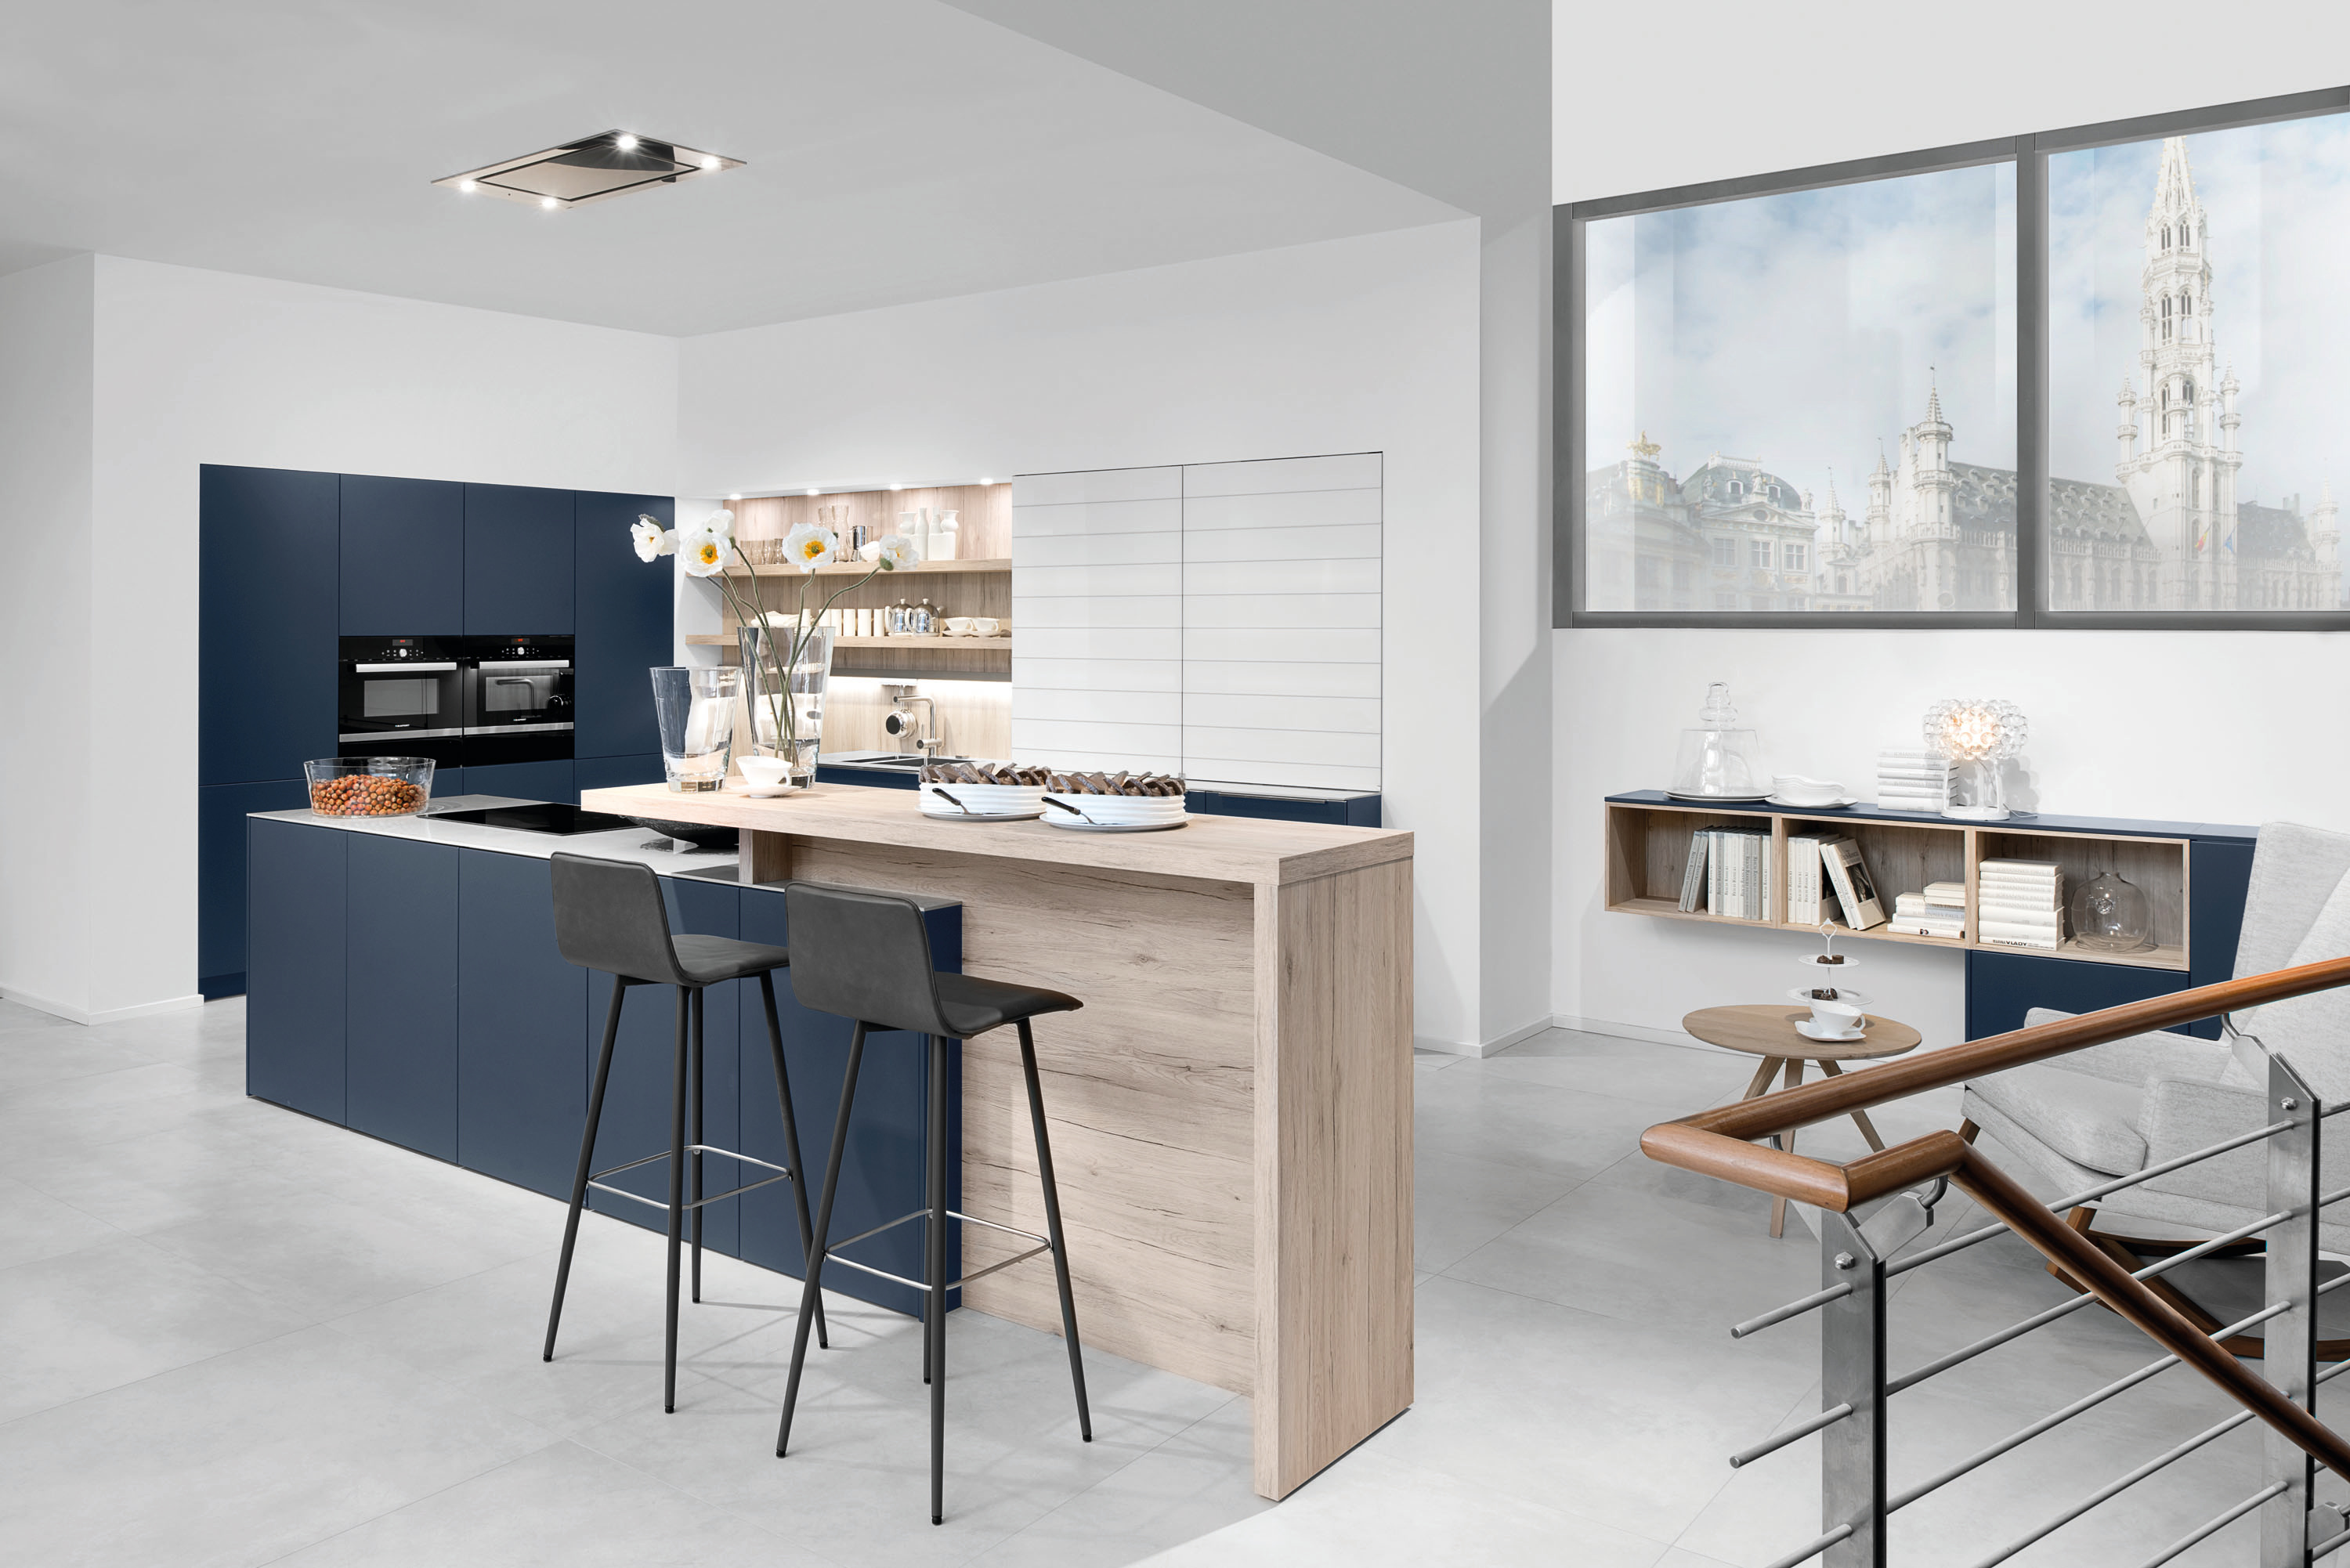 Cornflower Blue Kitchen. Kitchen Steel Stovetop Simple White Doors ...